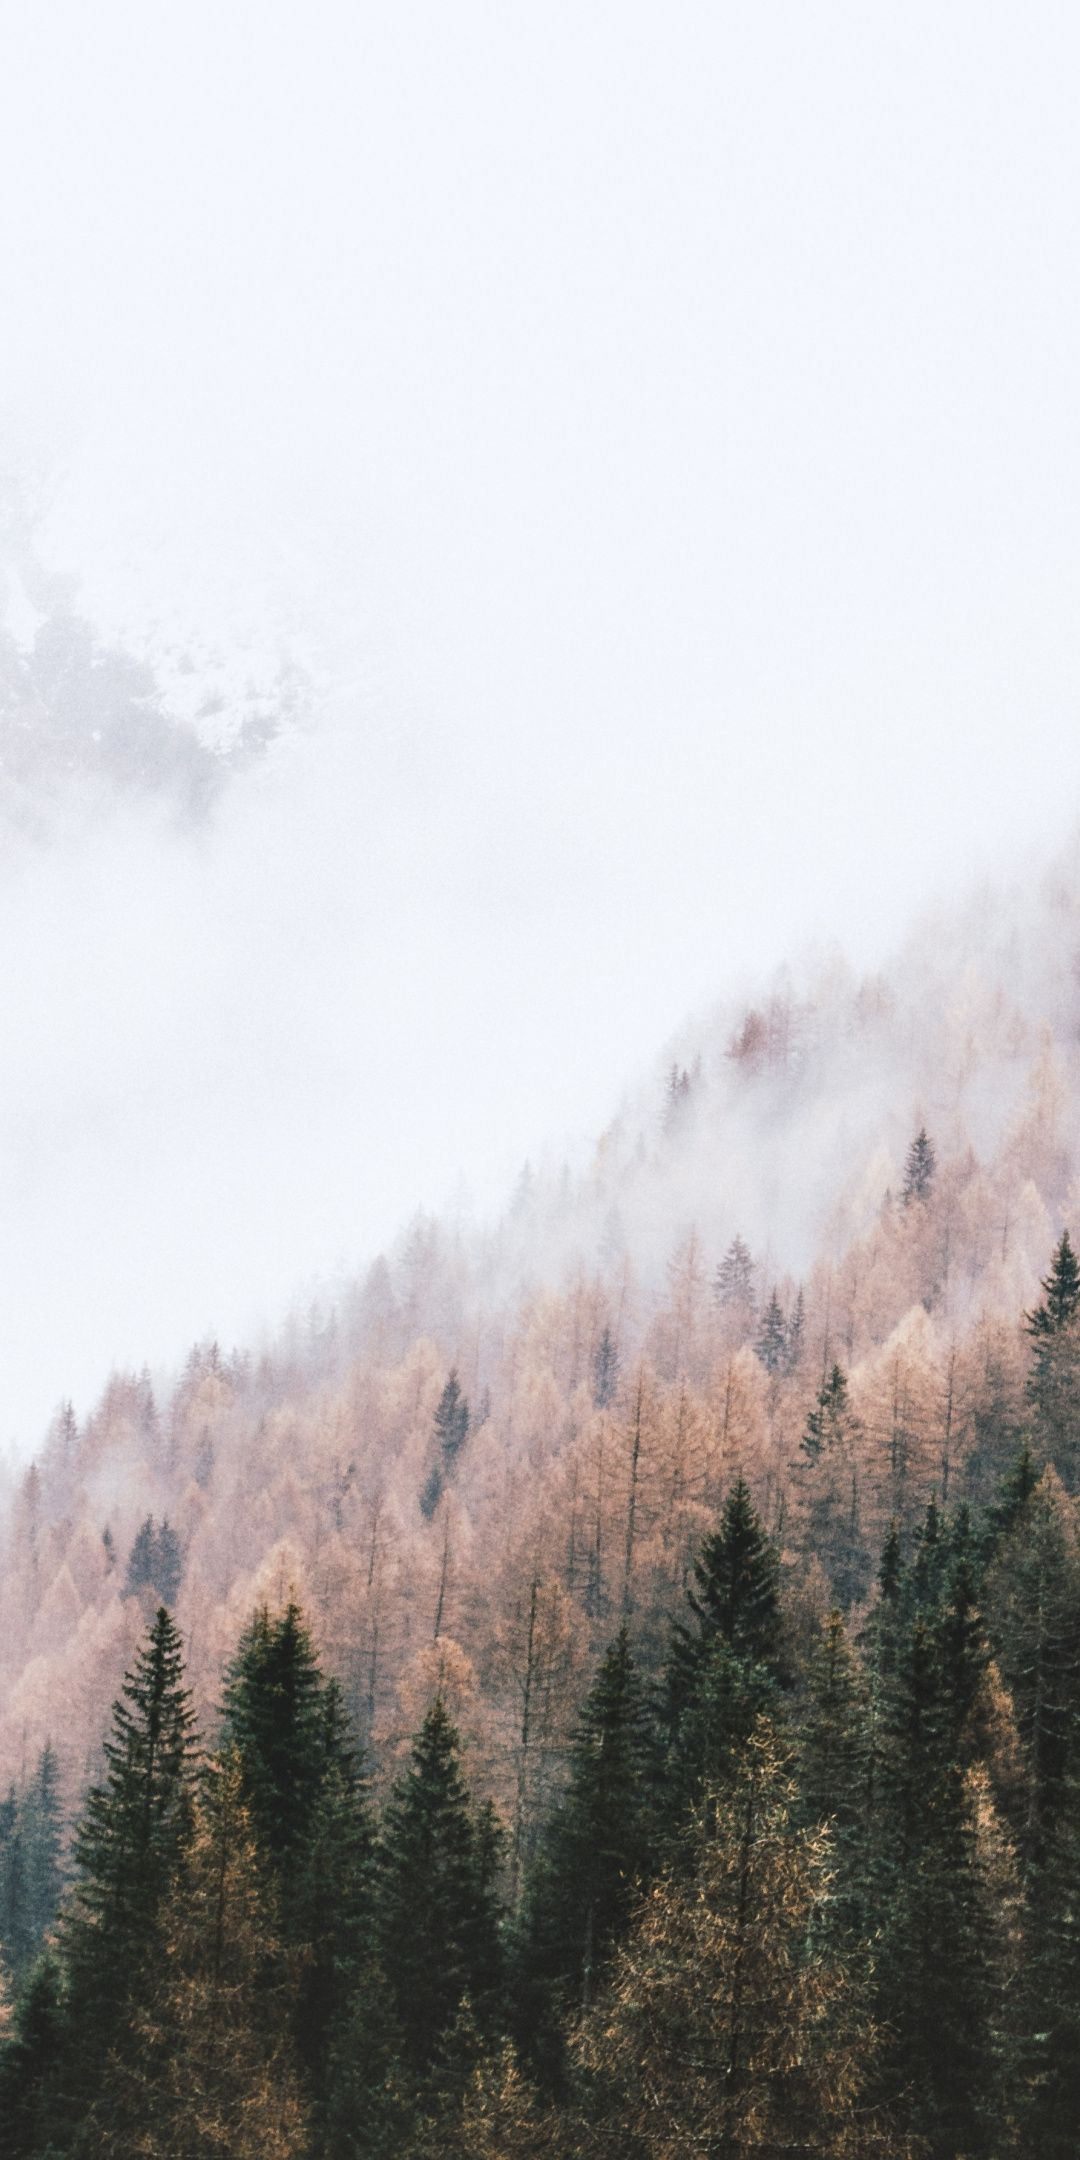 Autumn Peak Of Trees Pine Trees Mist 1080x2160 Wallpaper